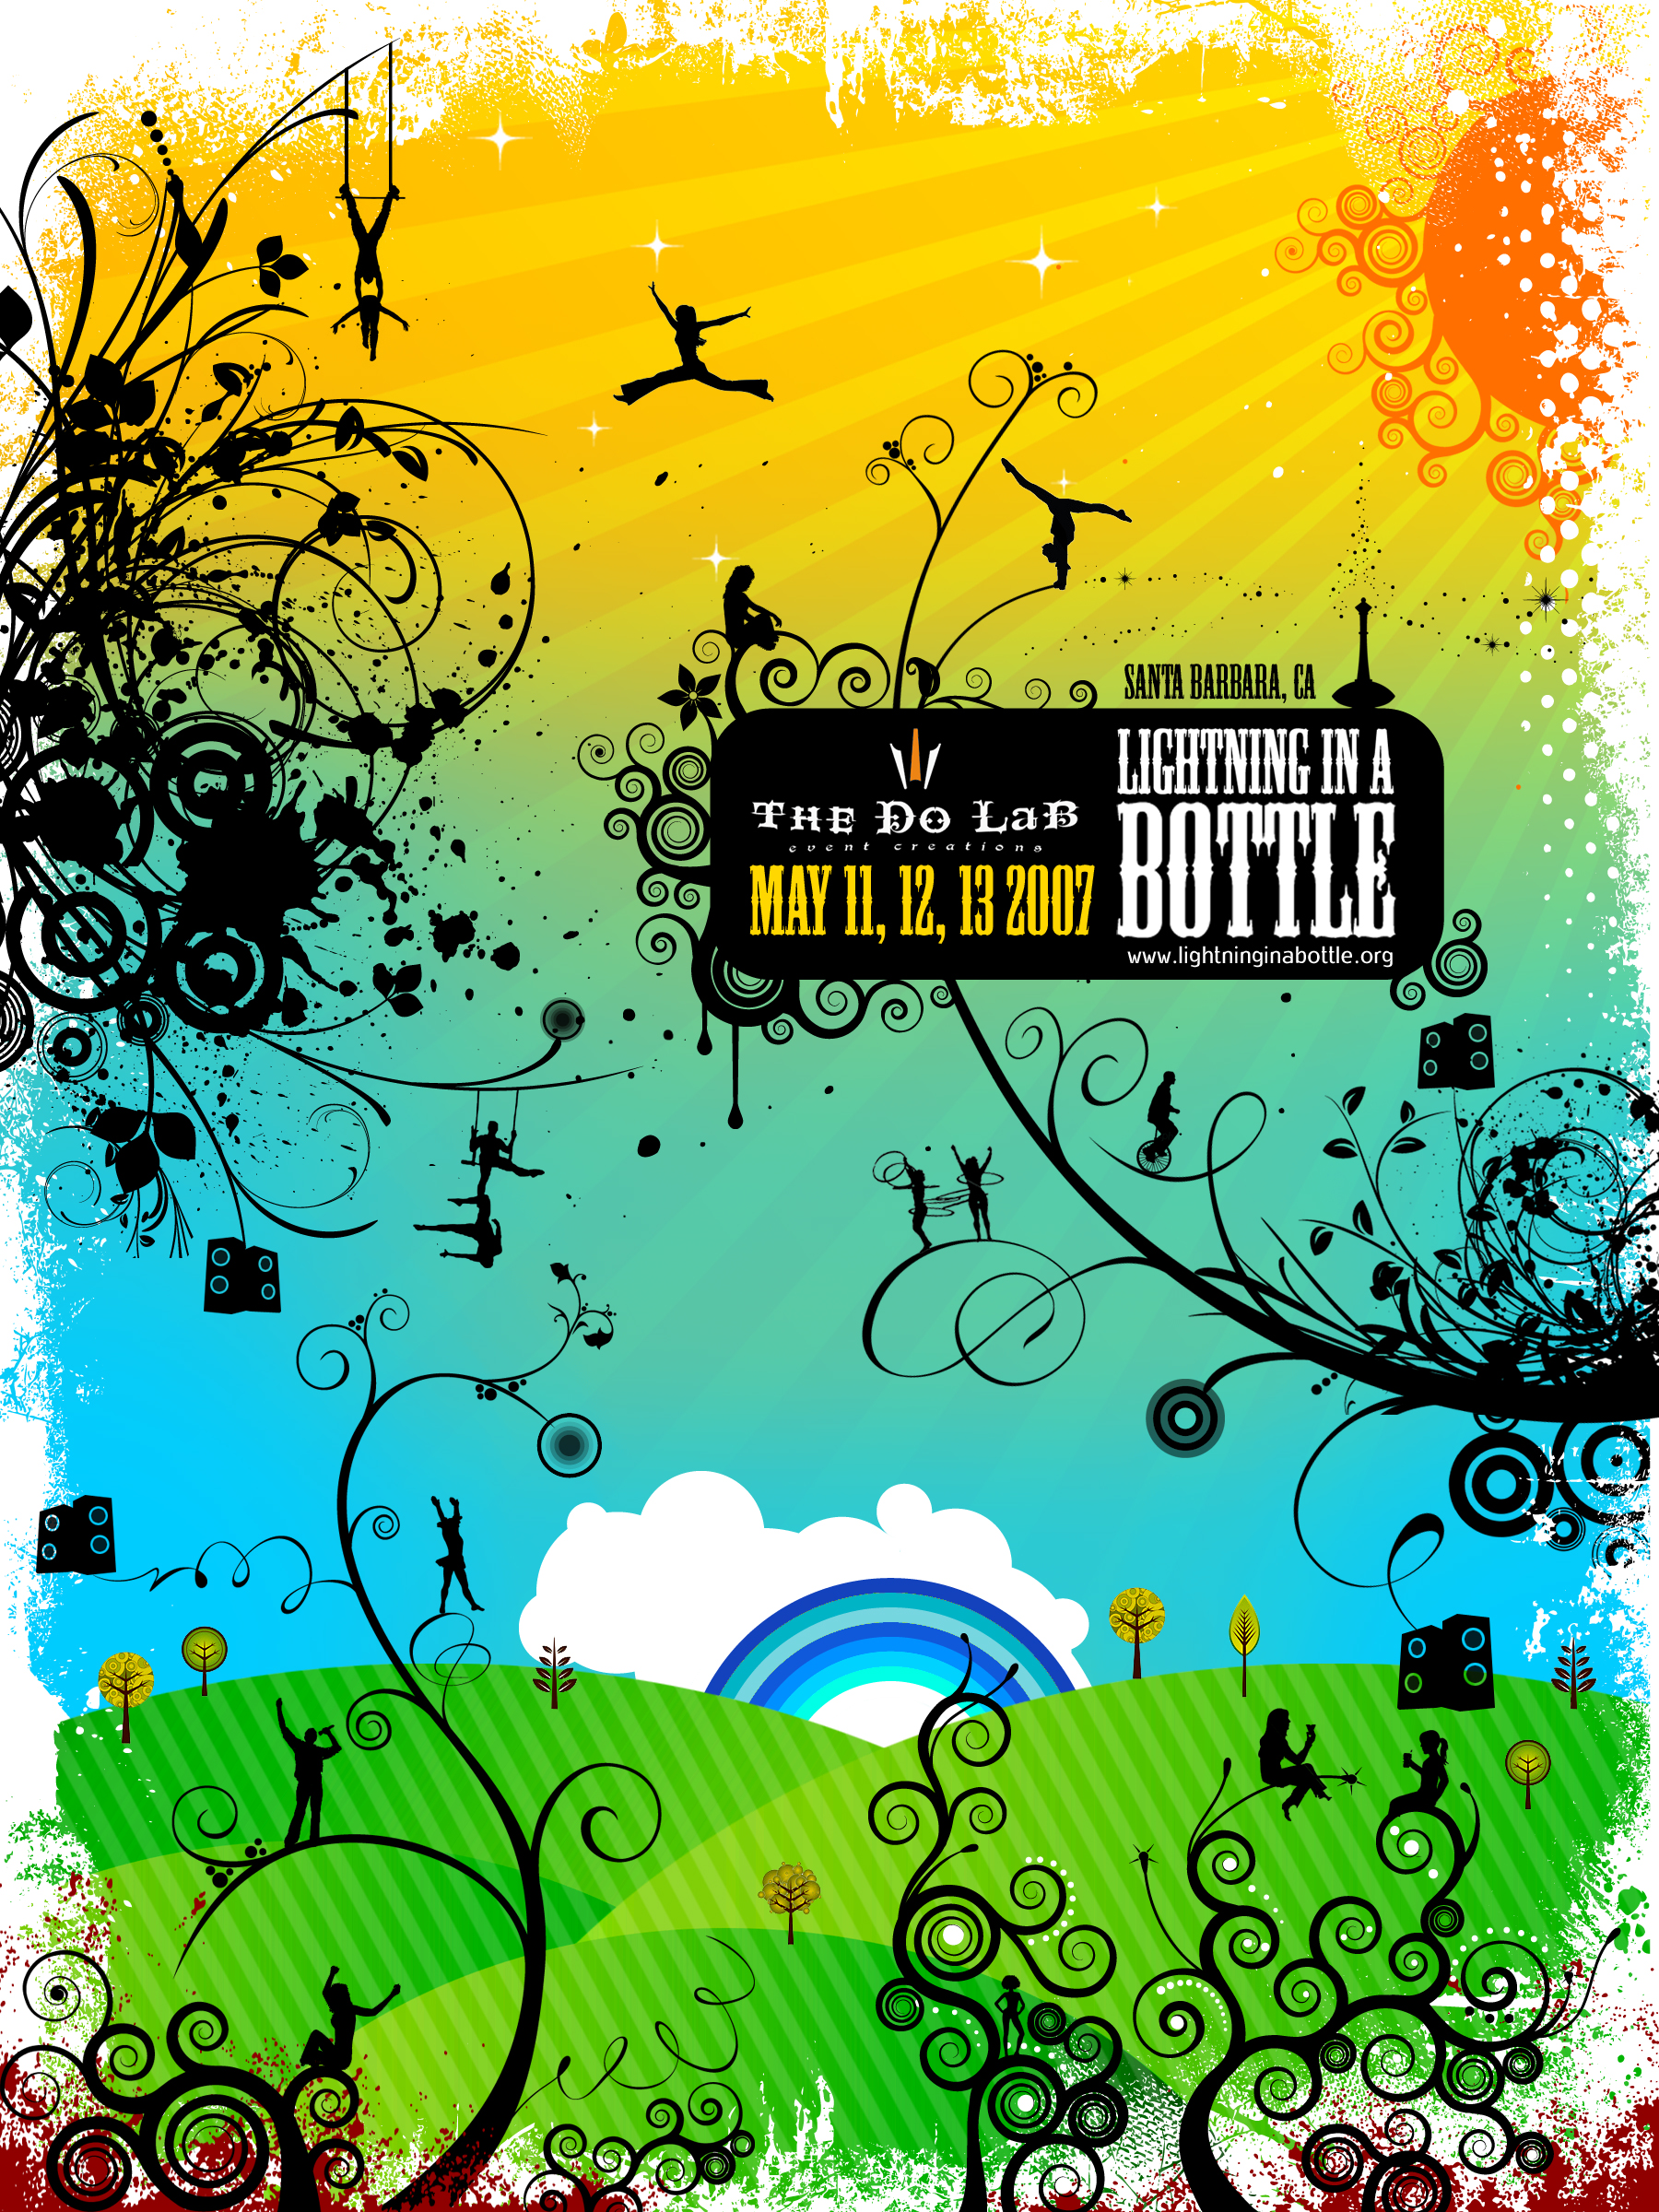 Lightning in a Bottle 2007 – Poster Winner